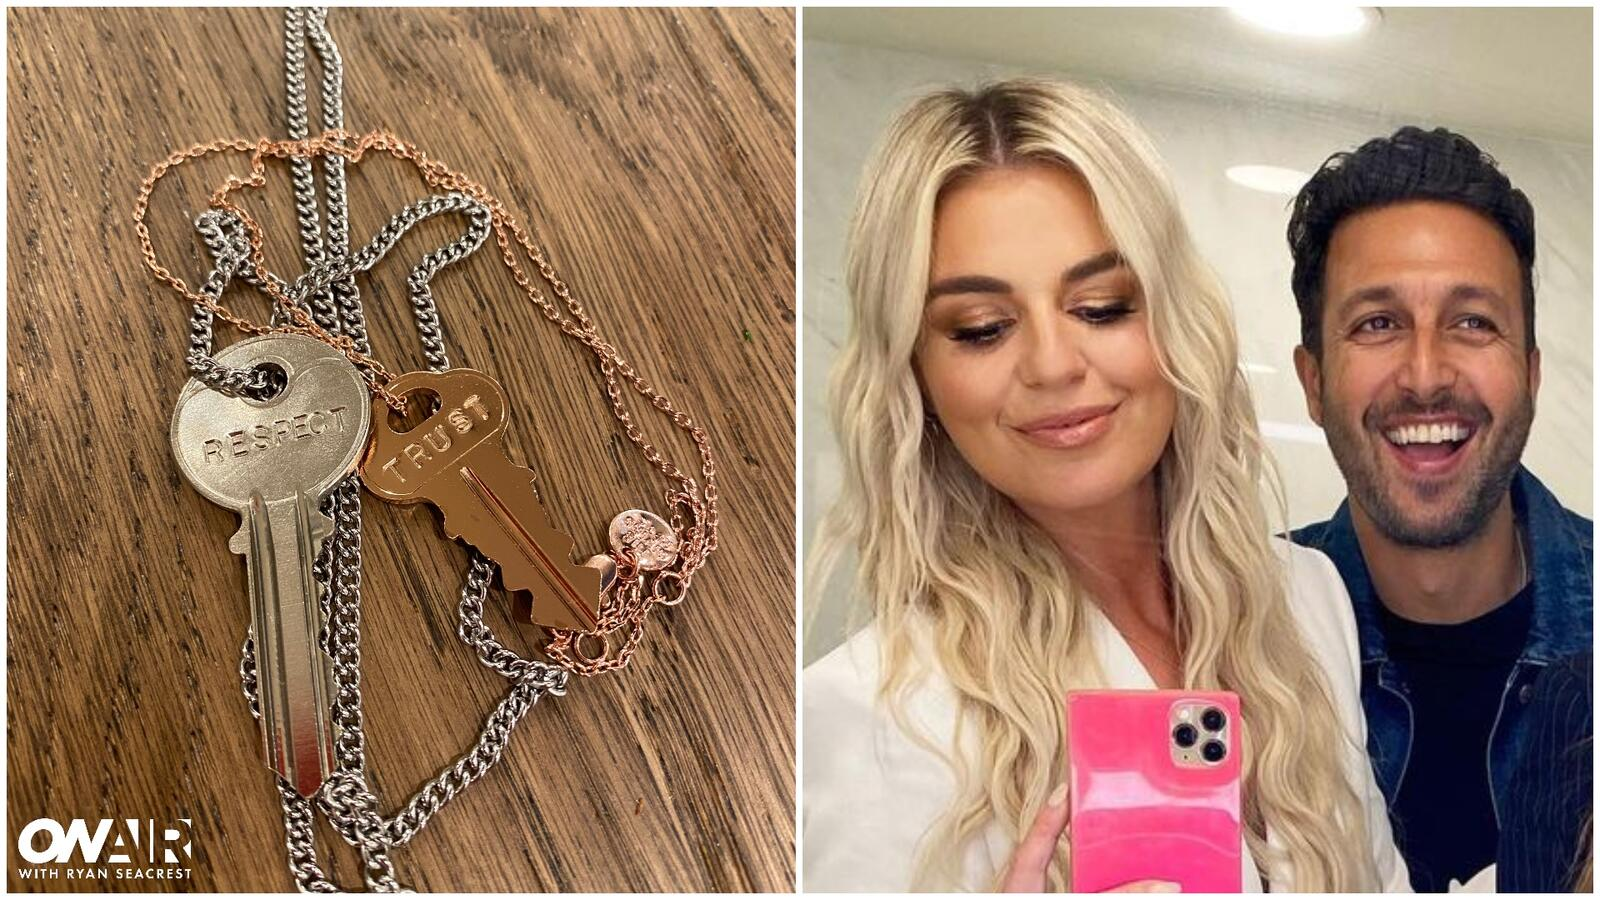 Tanya Rad Gave Her Boyfriend a Matching Key Necklace